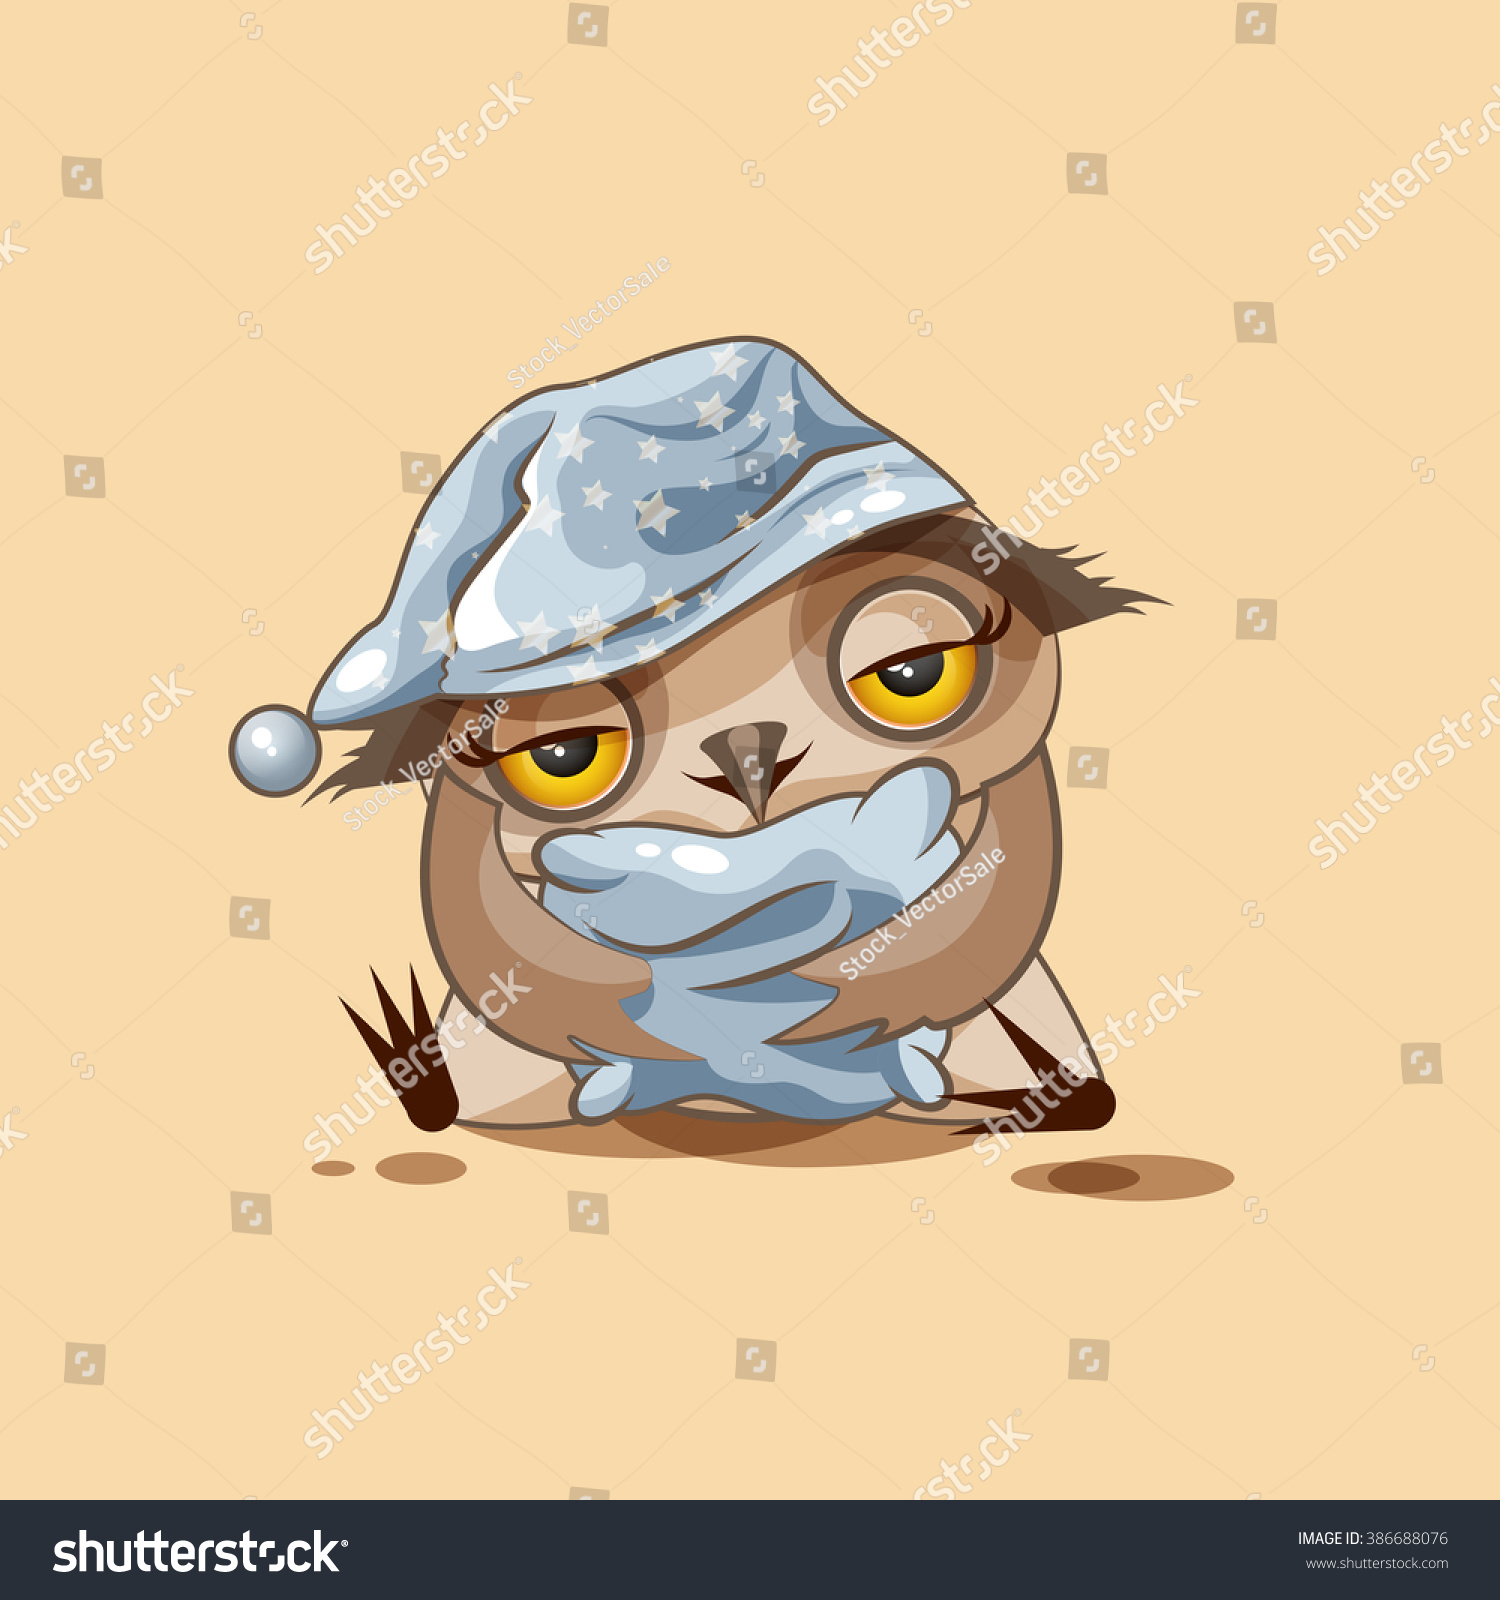 Vector stock illustration isolated emoji character stock vector vector stock illustration isolated emoji character cartoon sleepy owl in nightcap with pillow sticker emoticon for biocorpaavc Image collections